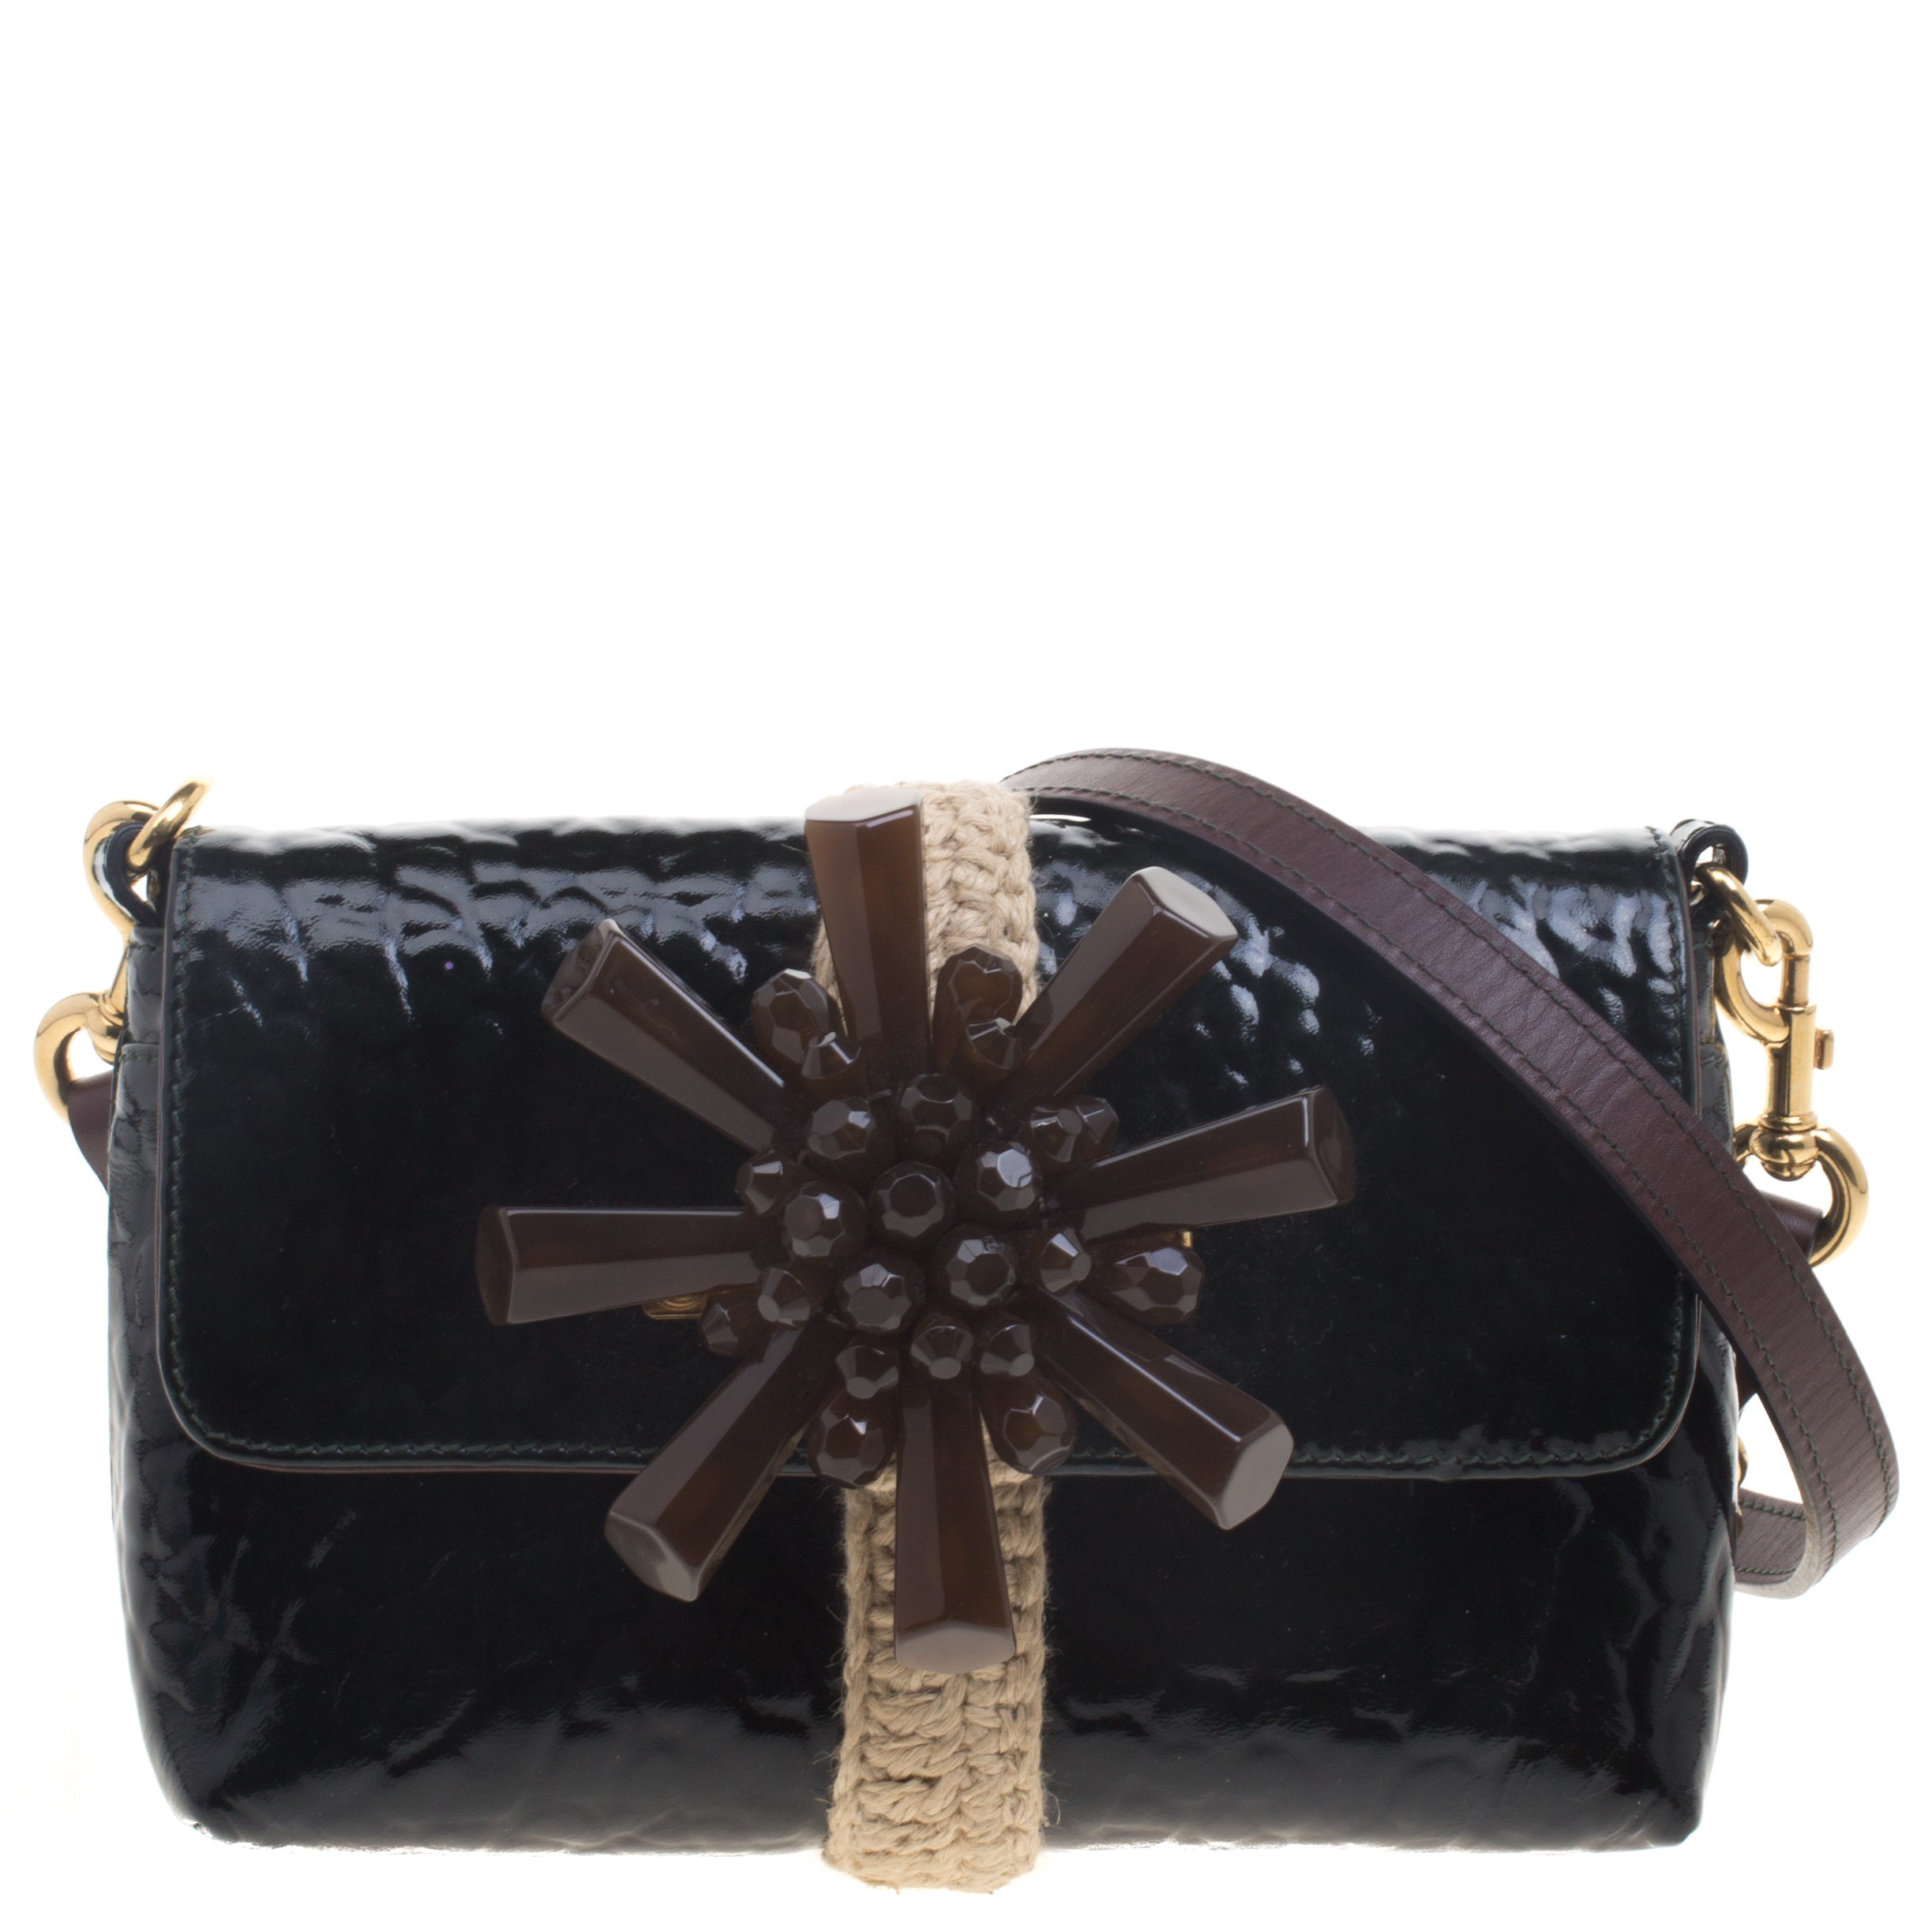 Marc Jacobs Dark Green Patent Leather Embellished Crossbody Bag. nextprev.  prevnext ... 79418d91a3e57